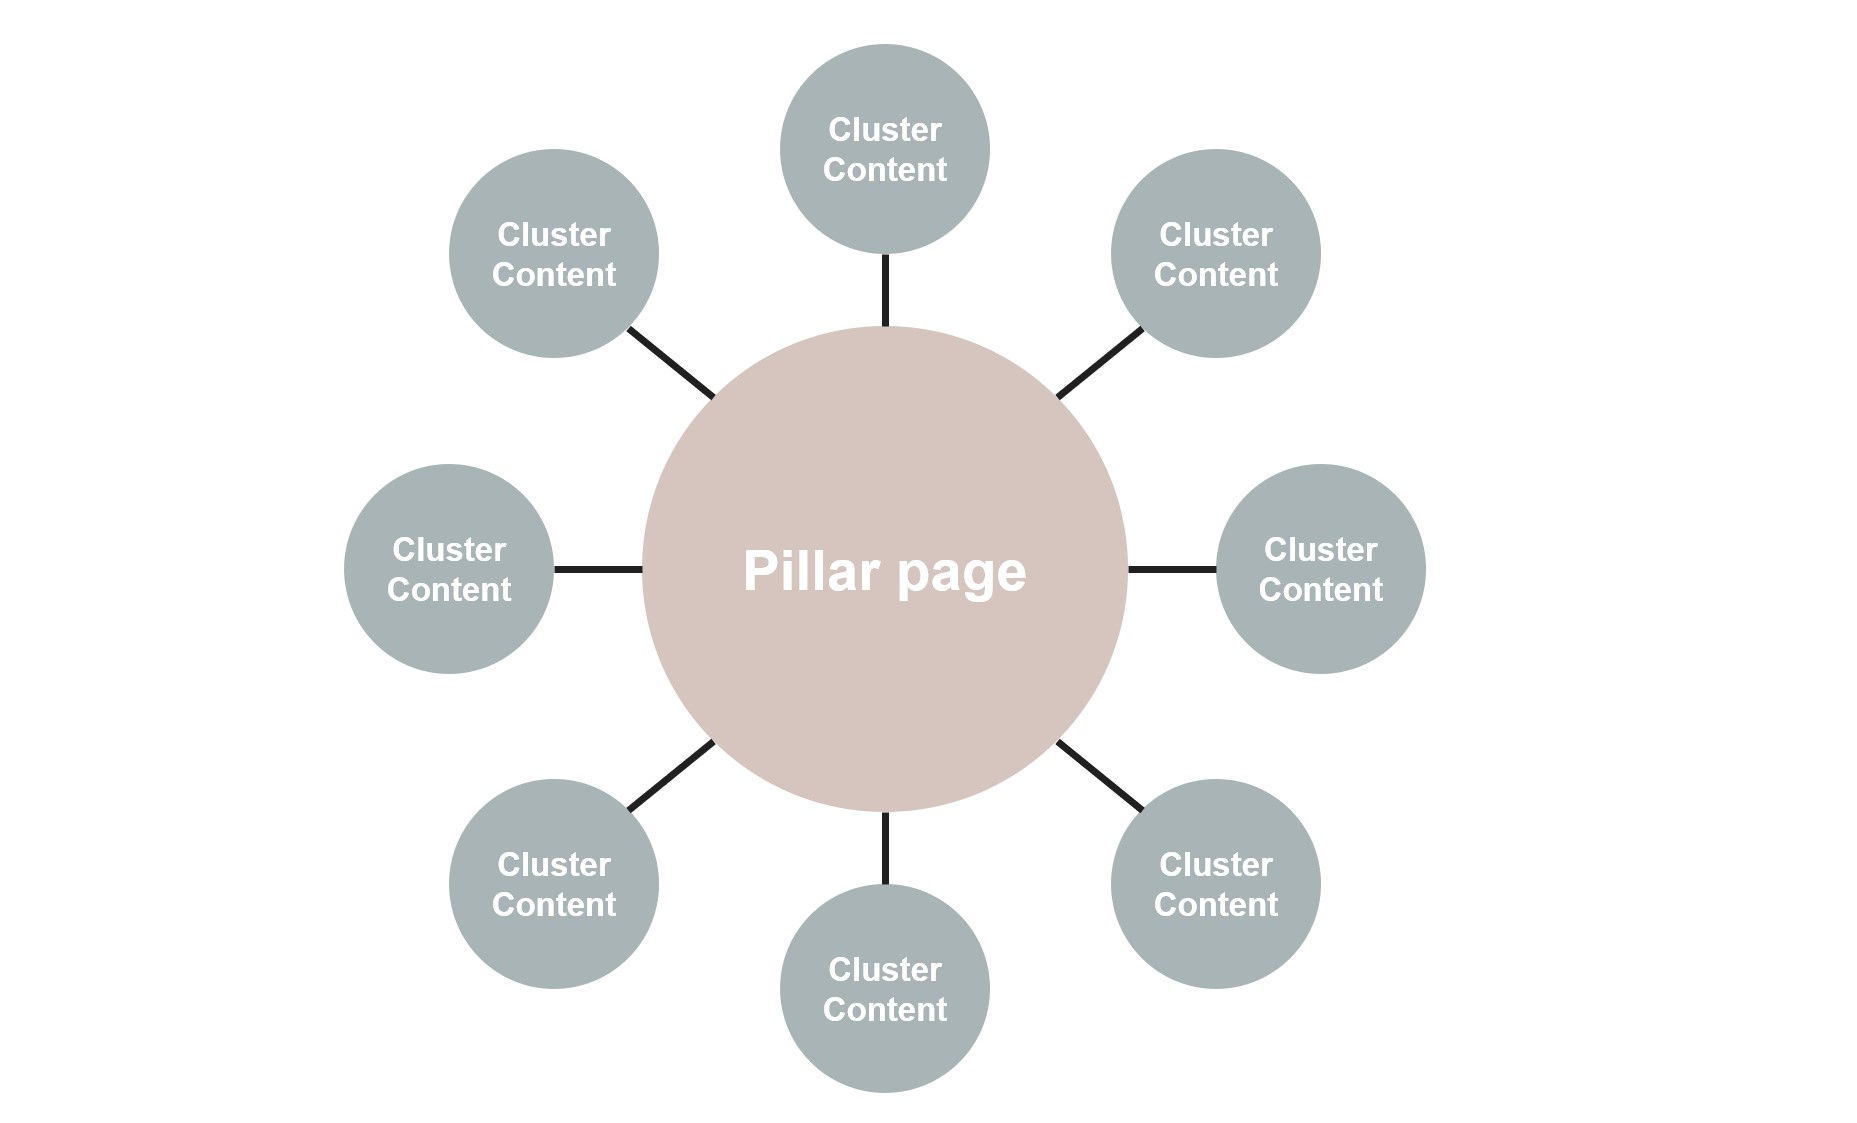 zooma-cluster-content-diagram